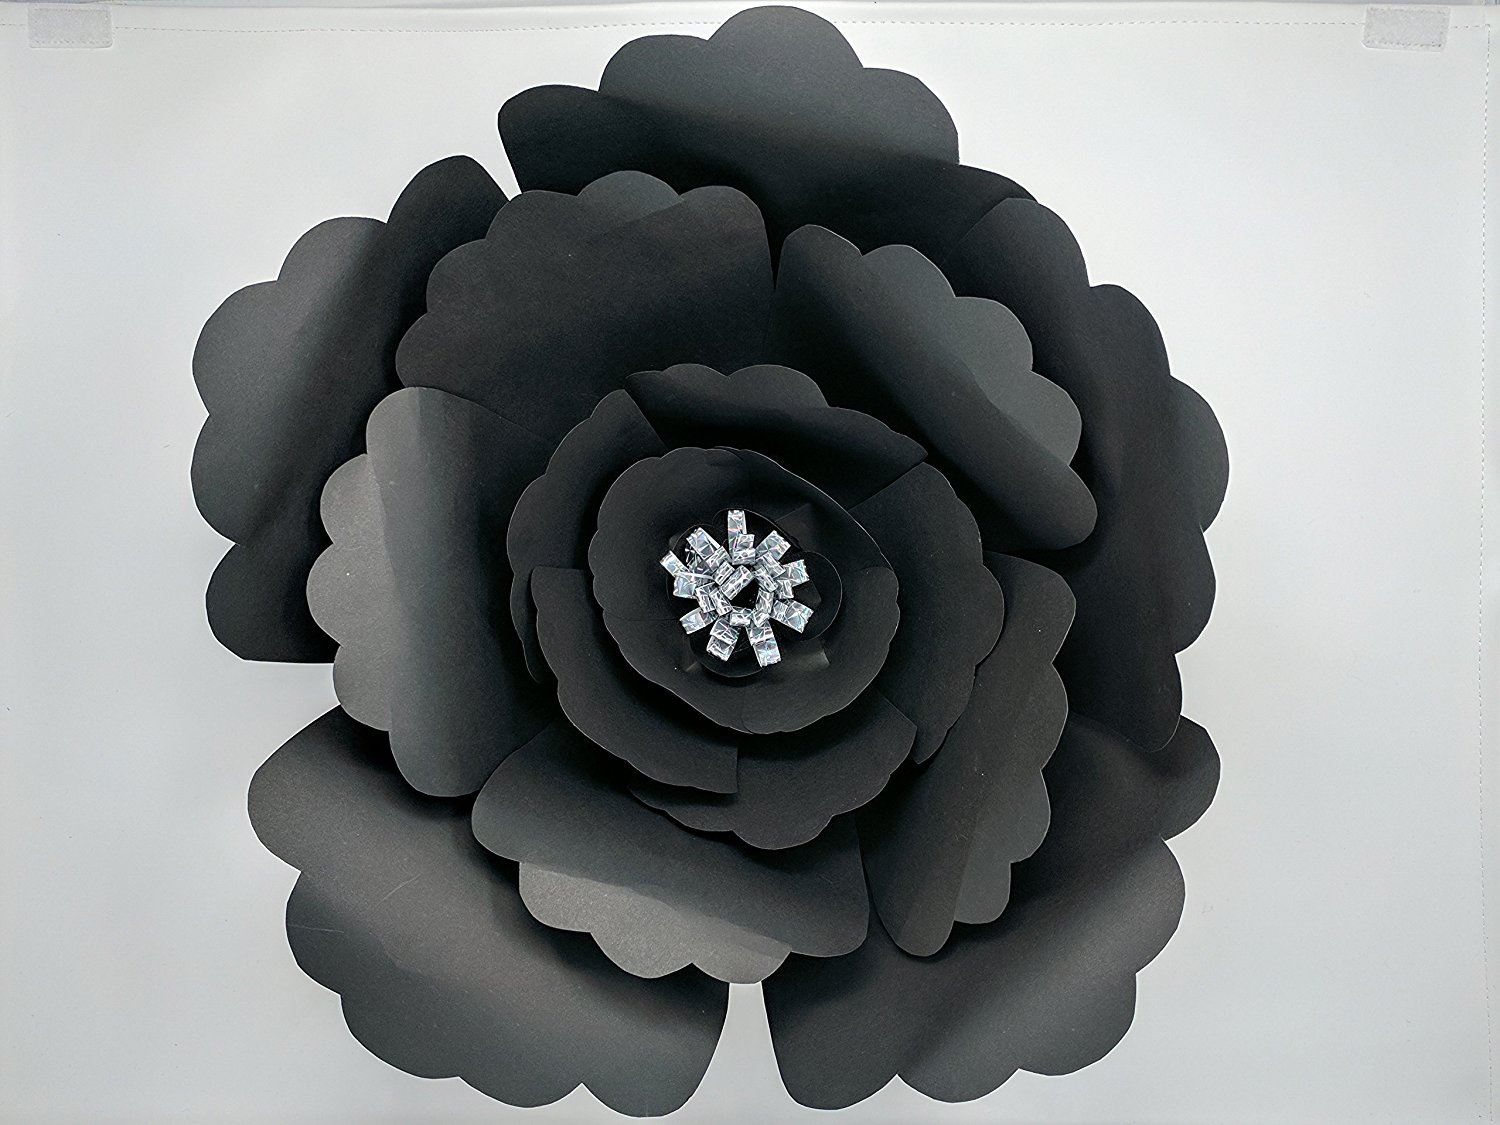 Paper Flowers For Backdrops Includes 12 Paper Flowers And 4 Paper